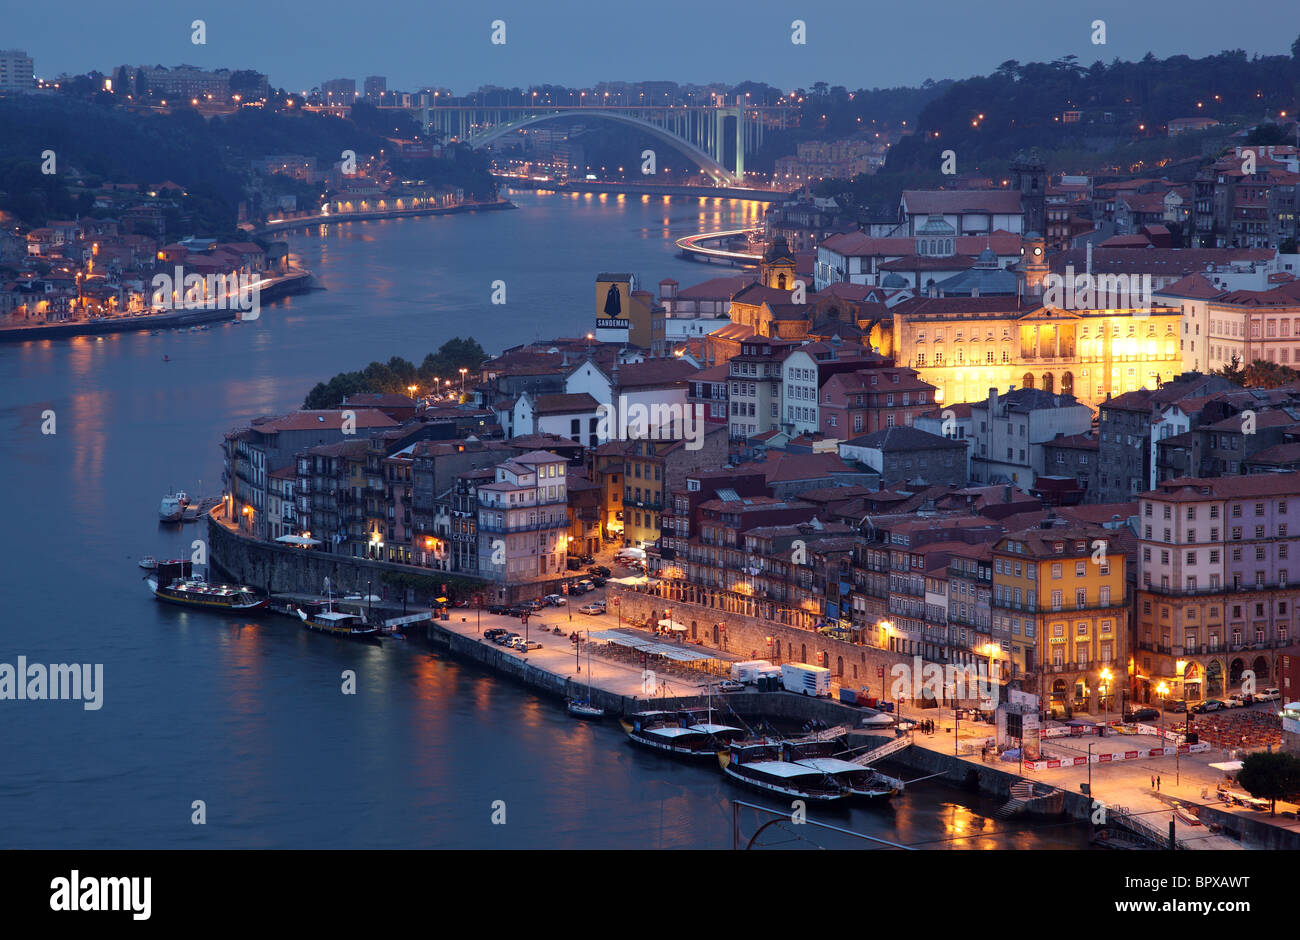 Douro river and the old town of Porto at dusk, Portugal - Stock Image